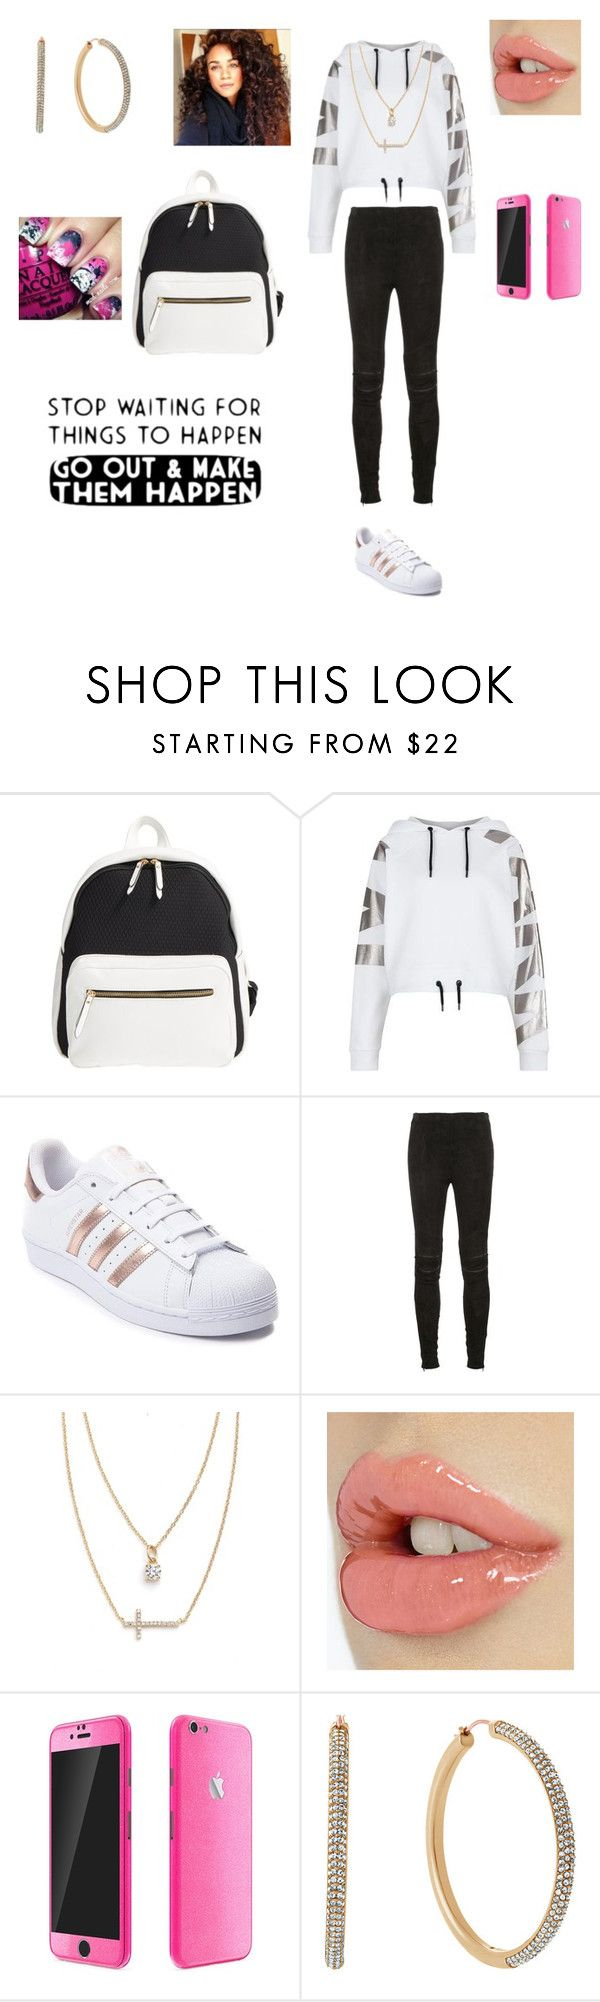 """Make things happen💙"" by kura01 ❤ liked on Polyvore featuring Poverty Flats, Ivy Park, adidas, Yves Saint Laurent, Crislu and Michael Kors"